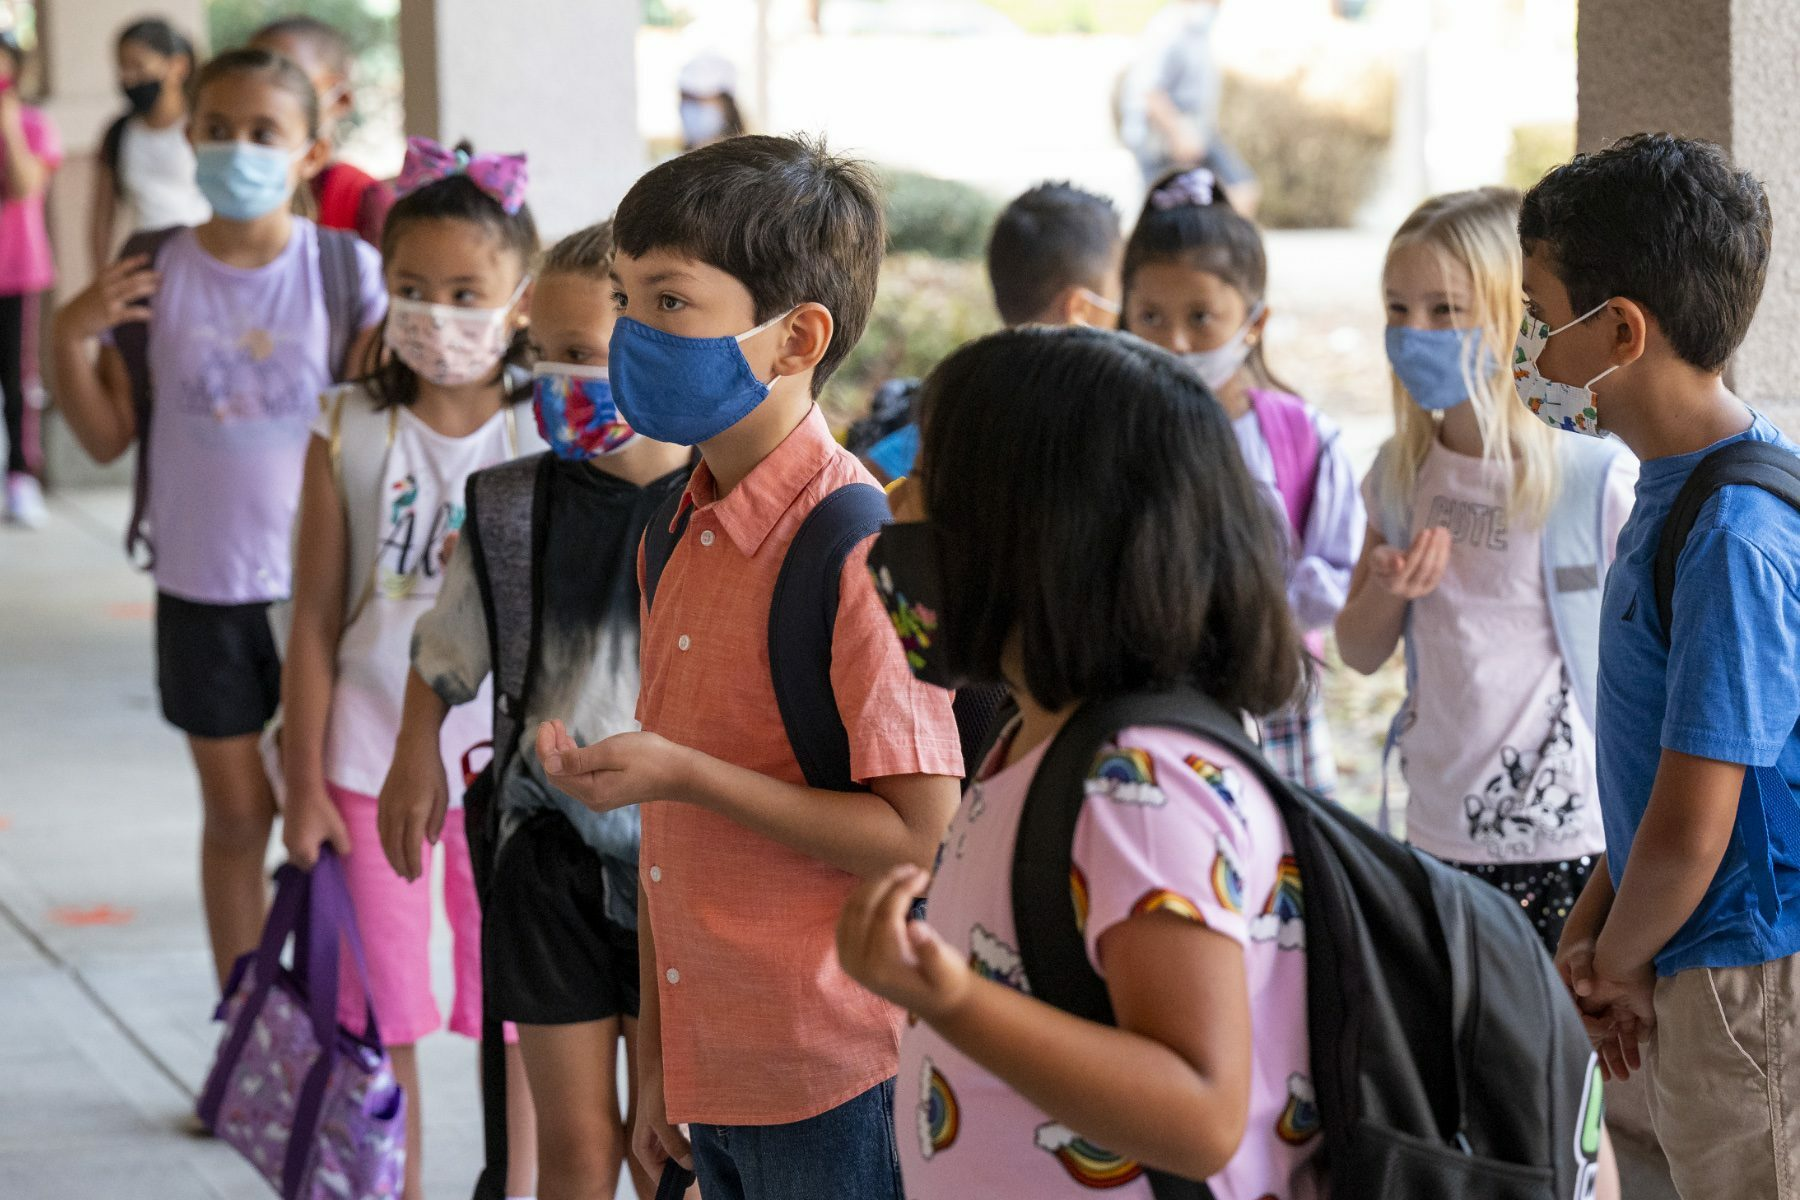 Second grade students stand with masks on.